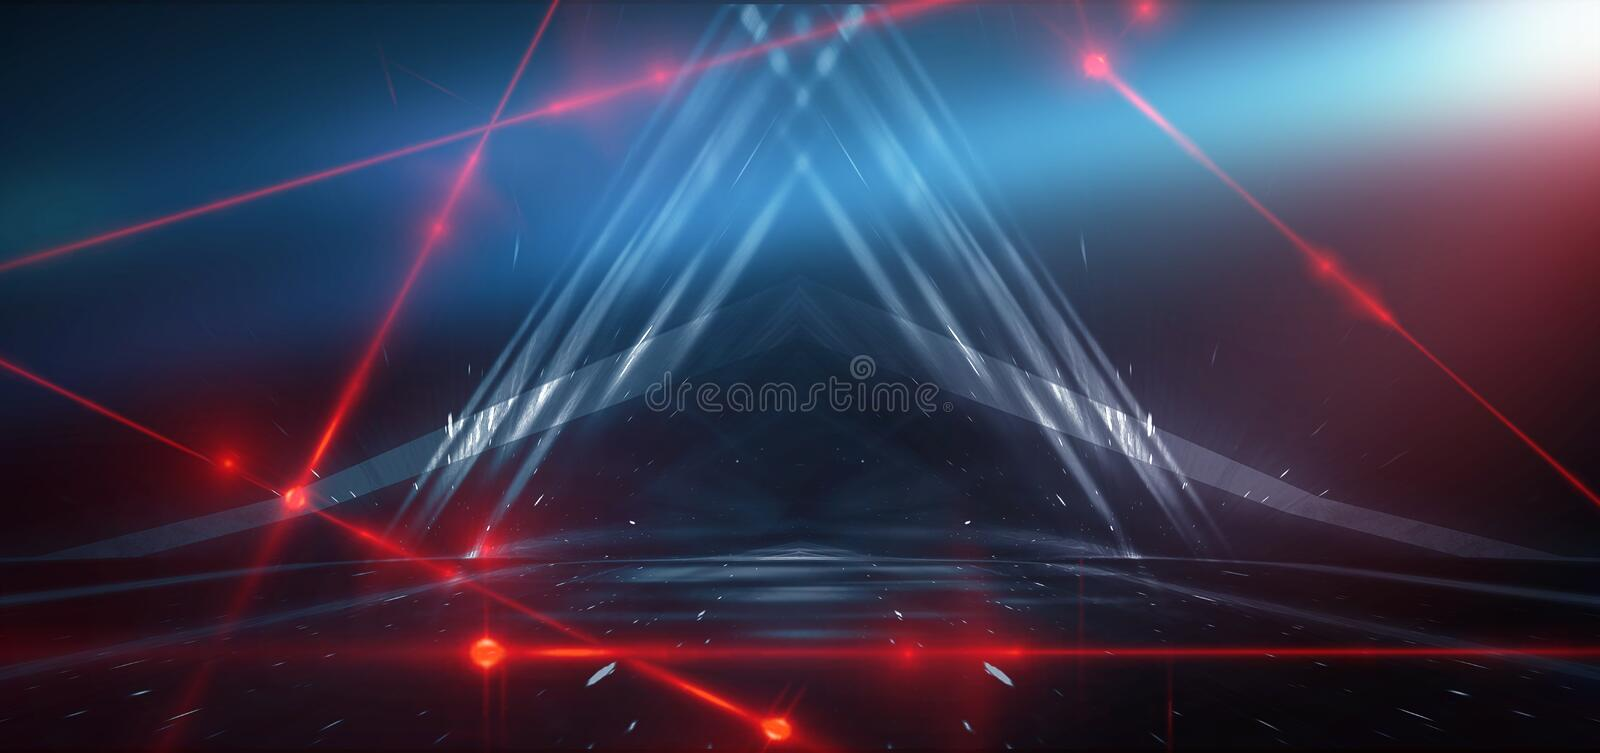 Abstract blue background with neon light, tunnel, corridor, red laser rays, smoke. Light arch. Abstraction of blue with neon, rays, lines stock photo